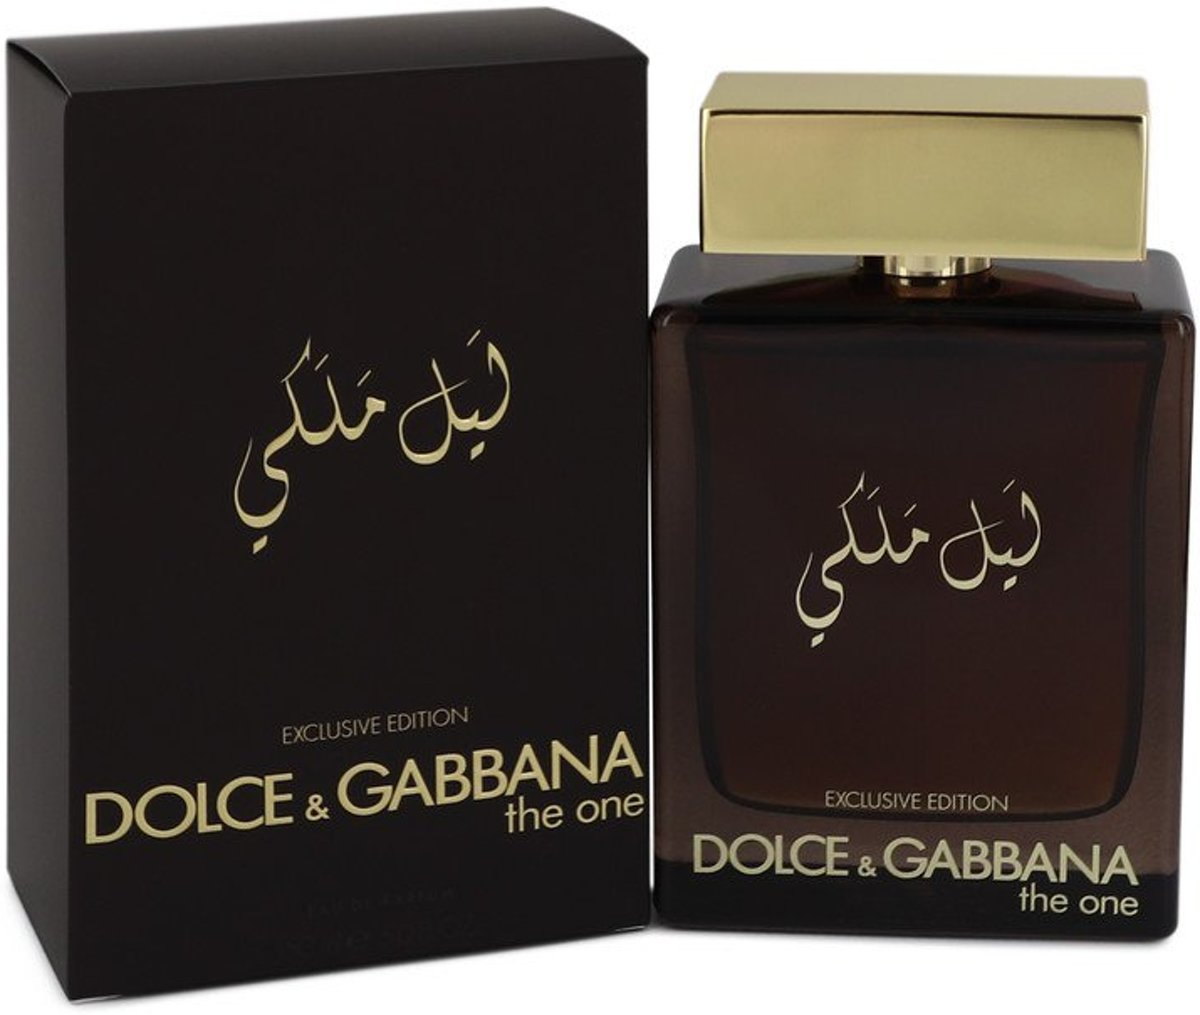 Dolce & Gabbana Dolce & Gabbana - Eau de parfum - The one royal night - 150 ml